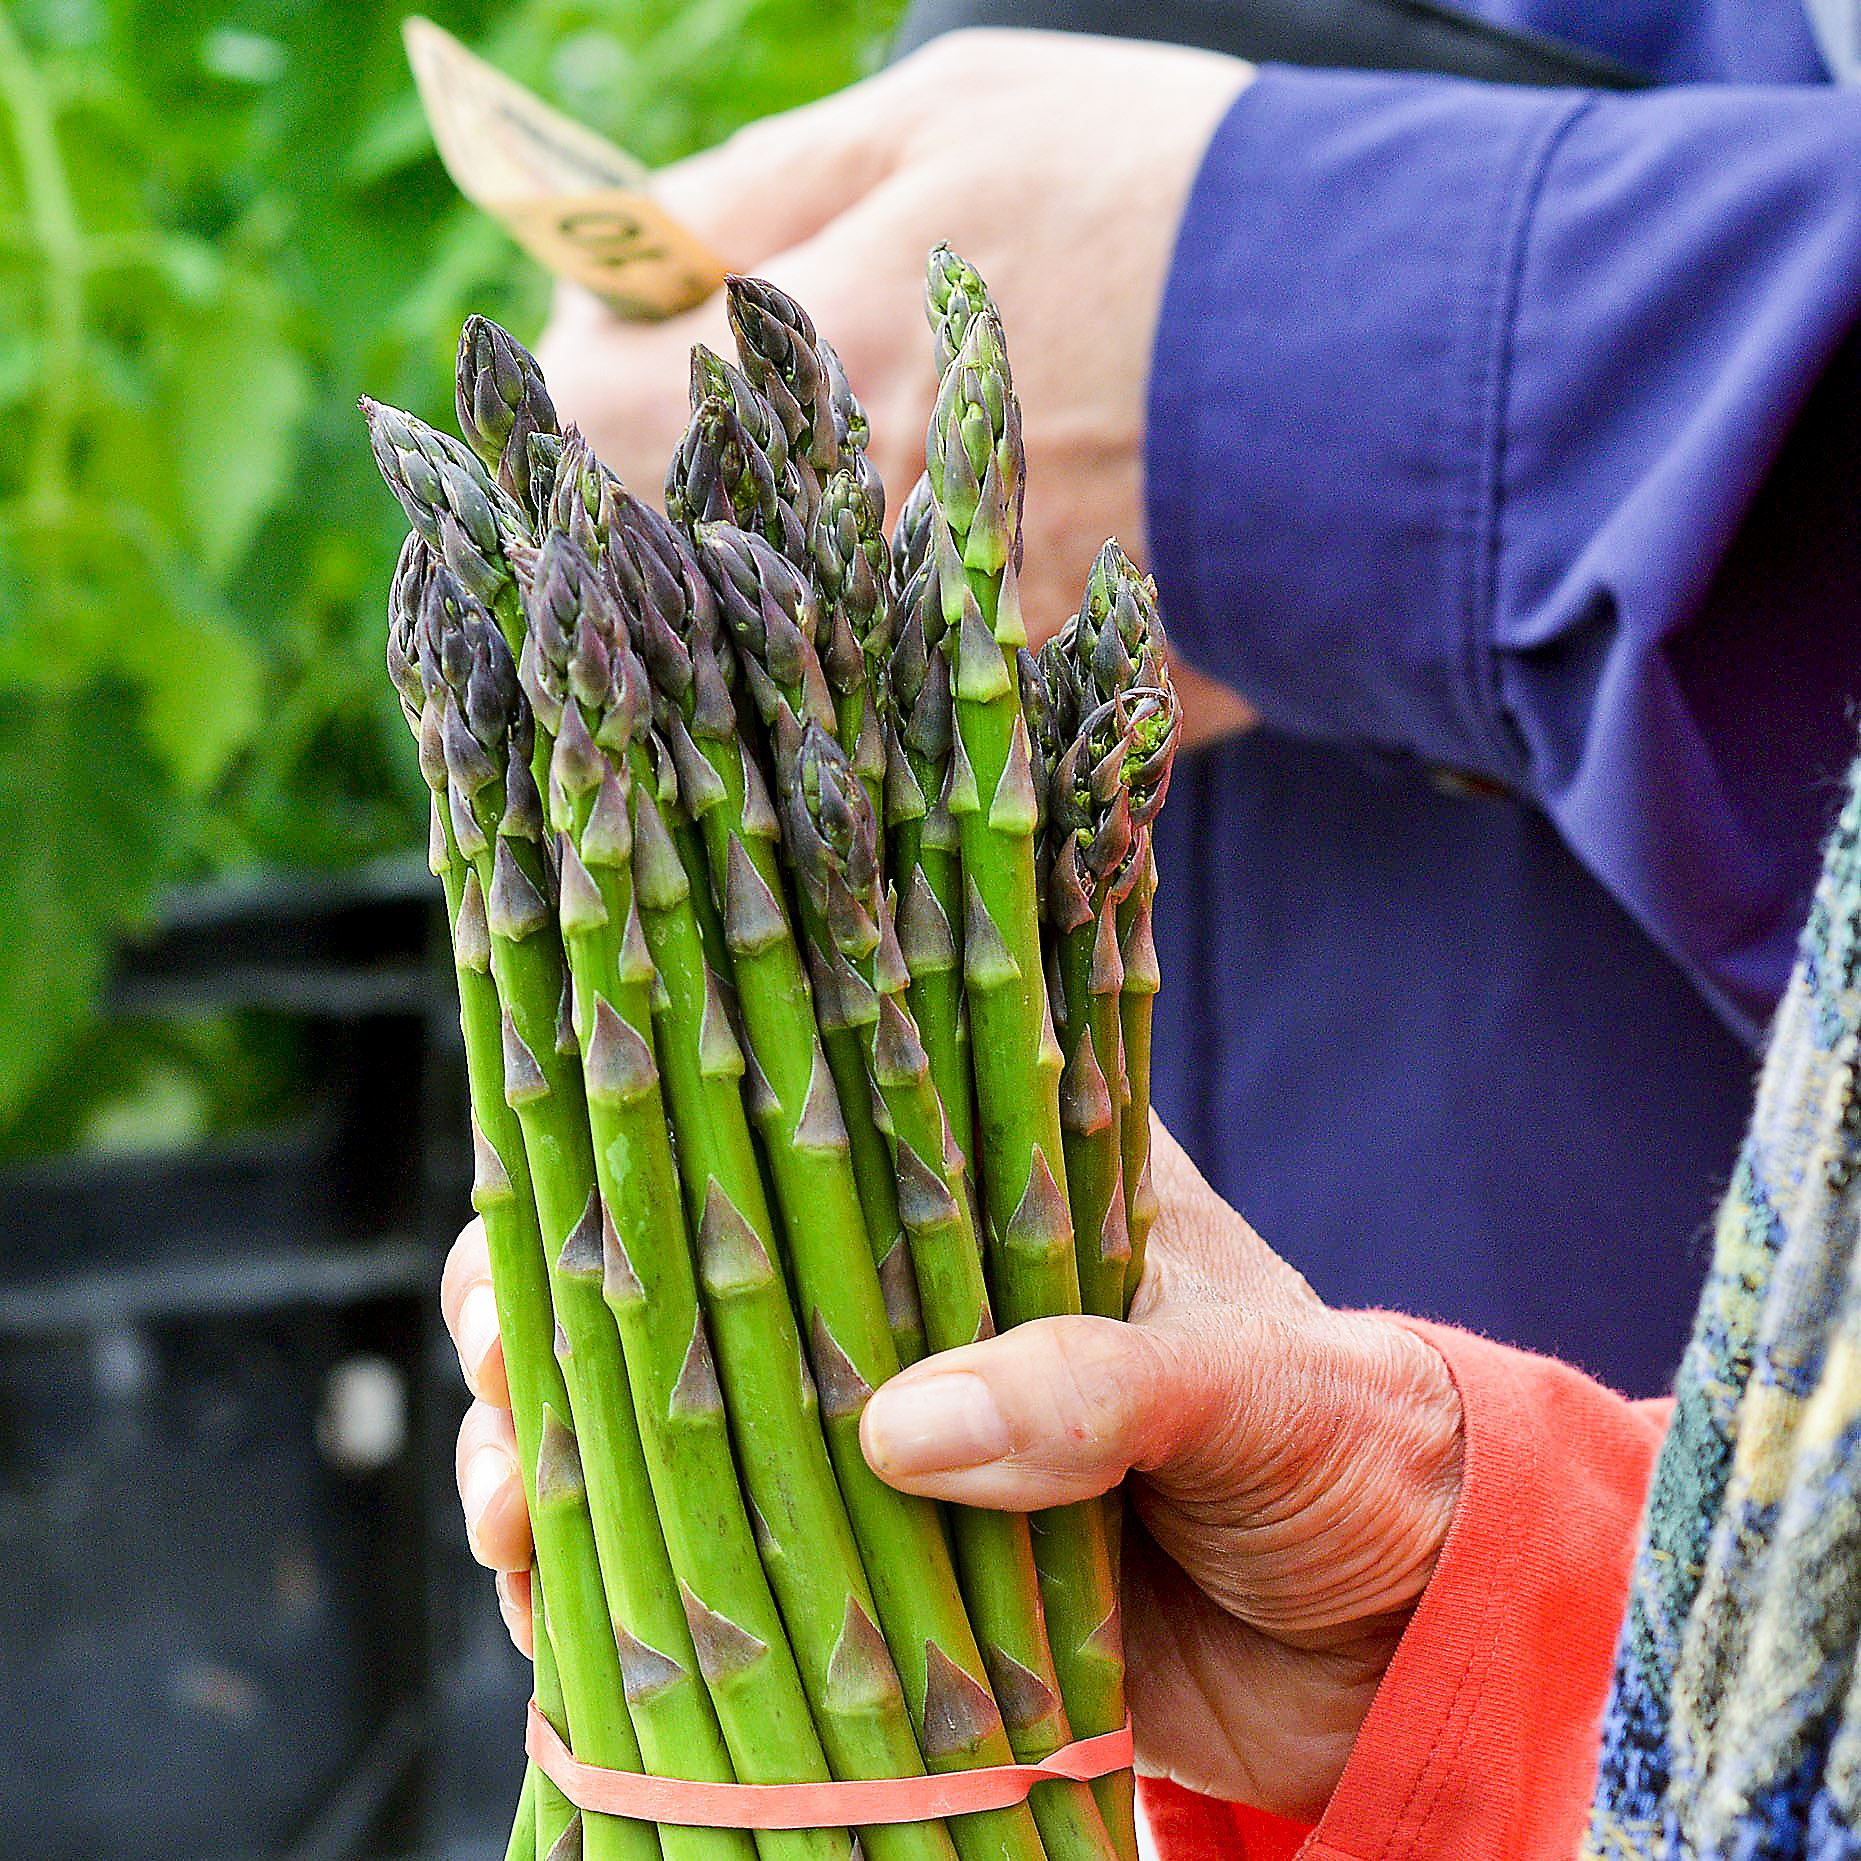 20150514farmersmarketfood04 Asparagus at the Ridgeview Acres Farm stand in Market Square.